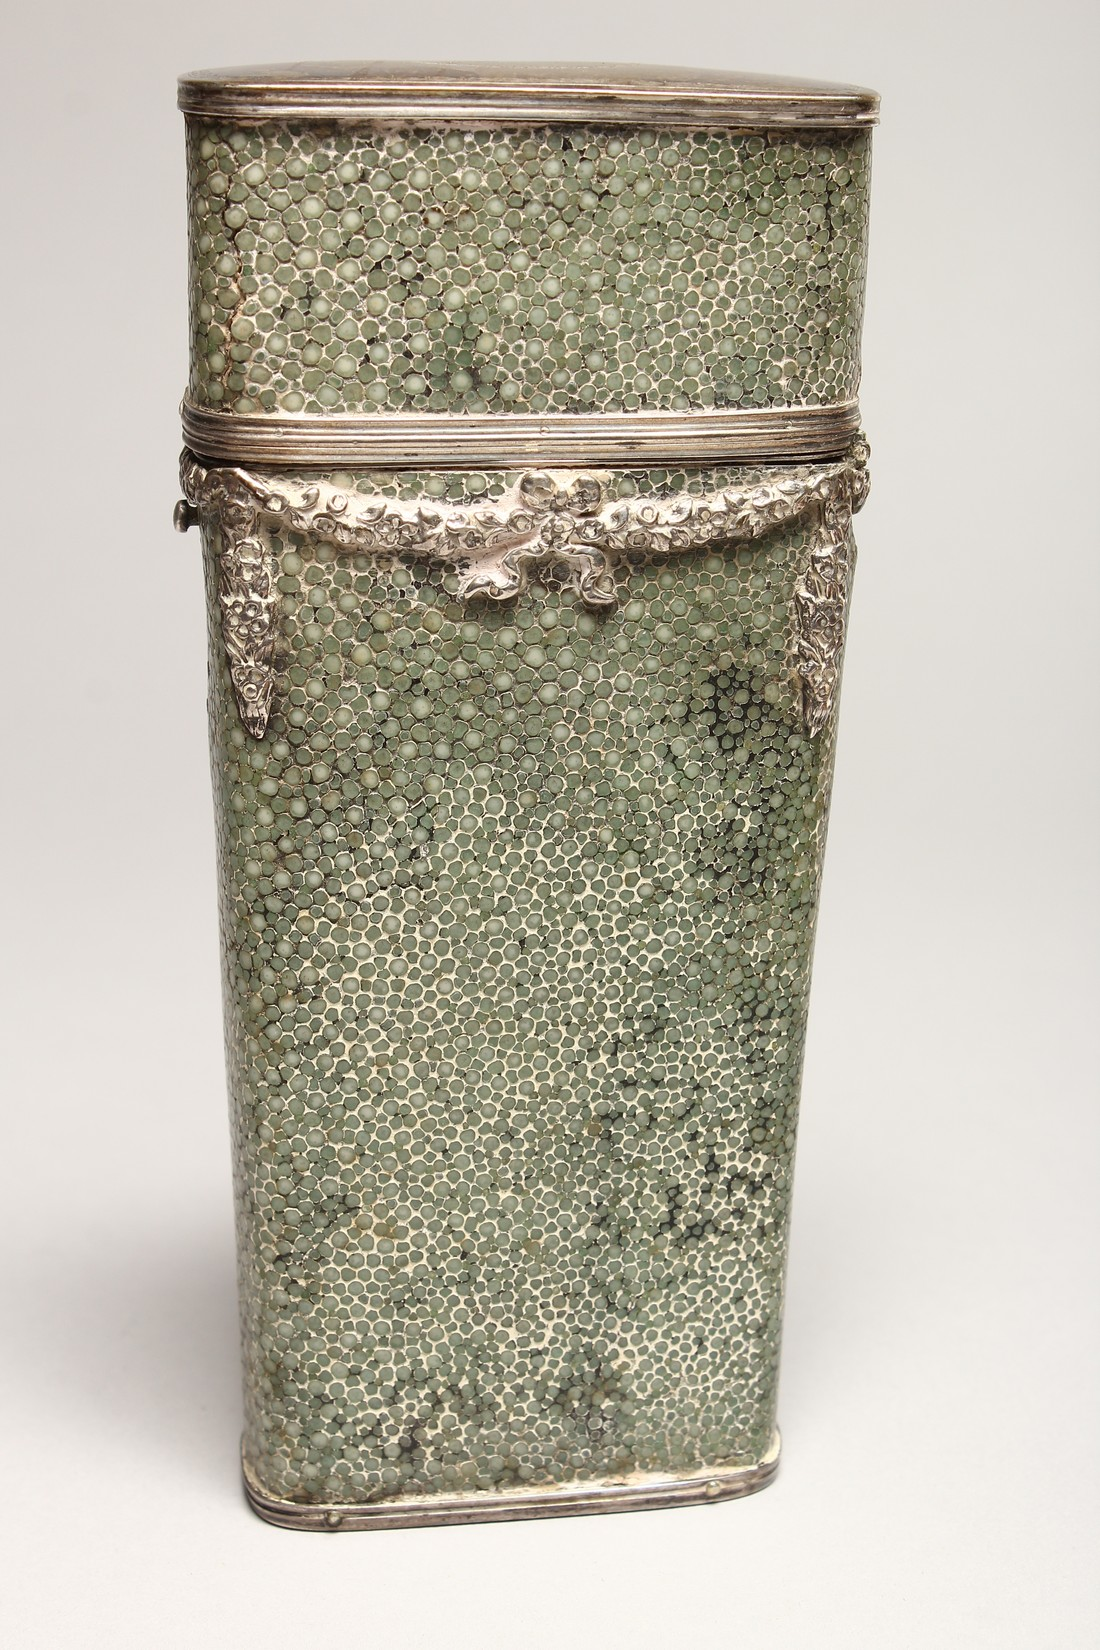 A GEORGIAN WHISKY FLASK in a shagreen case, with silver garlands 6.5ins long (some damage). - Image 3 of 8